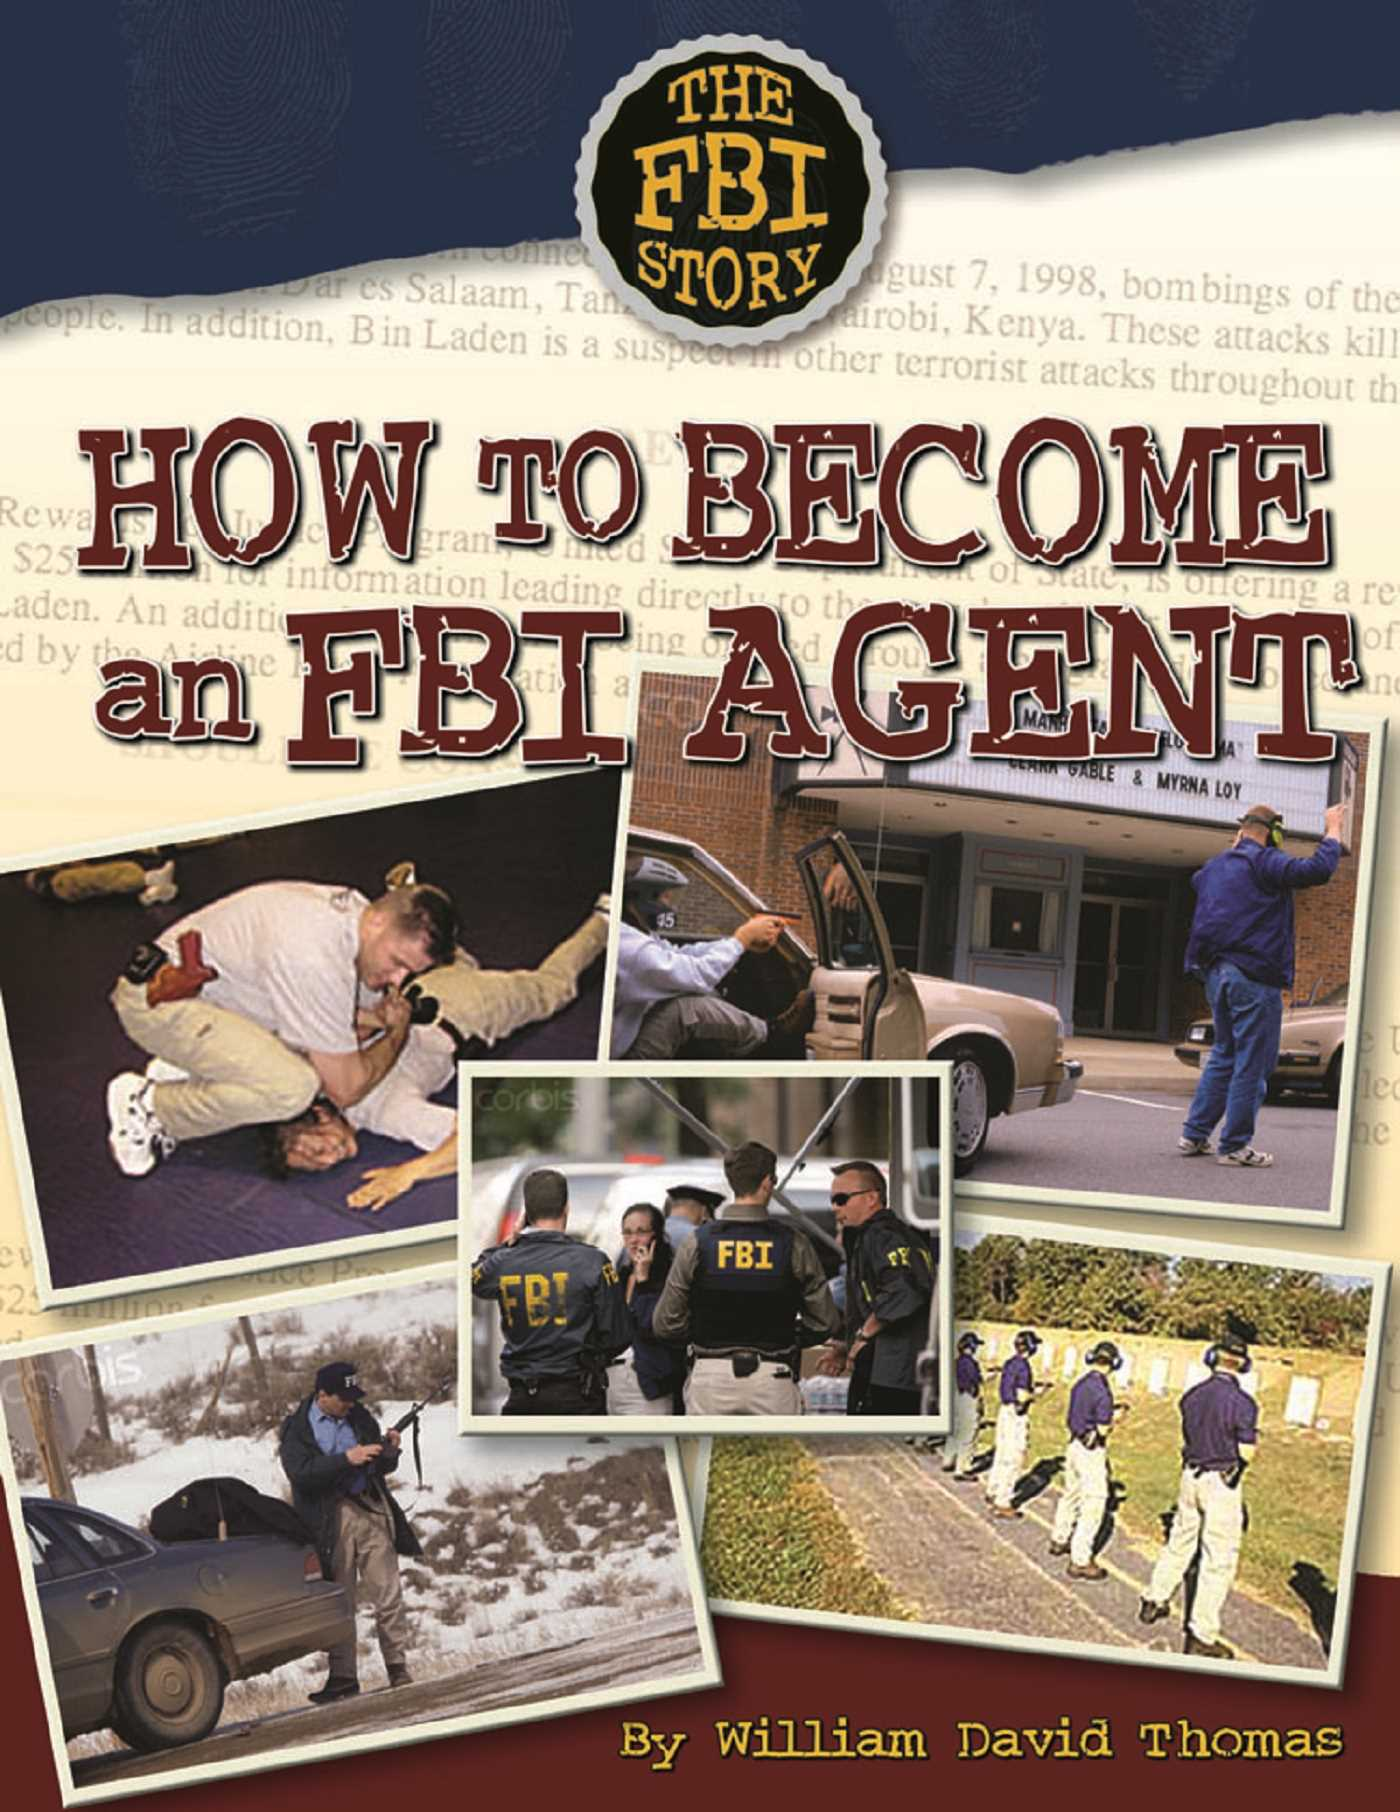 becoming an fbi agent For this type of person, being an fbi agent fulfills a fundamental need to serve people some people also enjoy the excitement and variations in activities that come with a position as an fbi agent federal jobs such as being an fbi agent also are perceived as being less prone to layoffs.